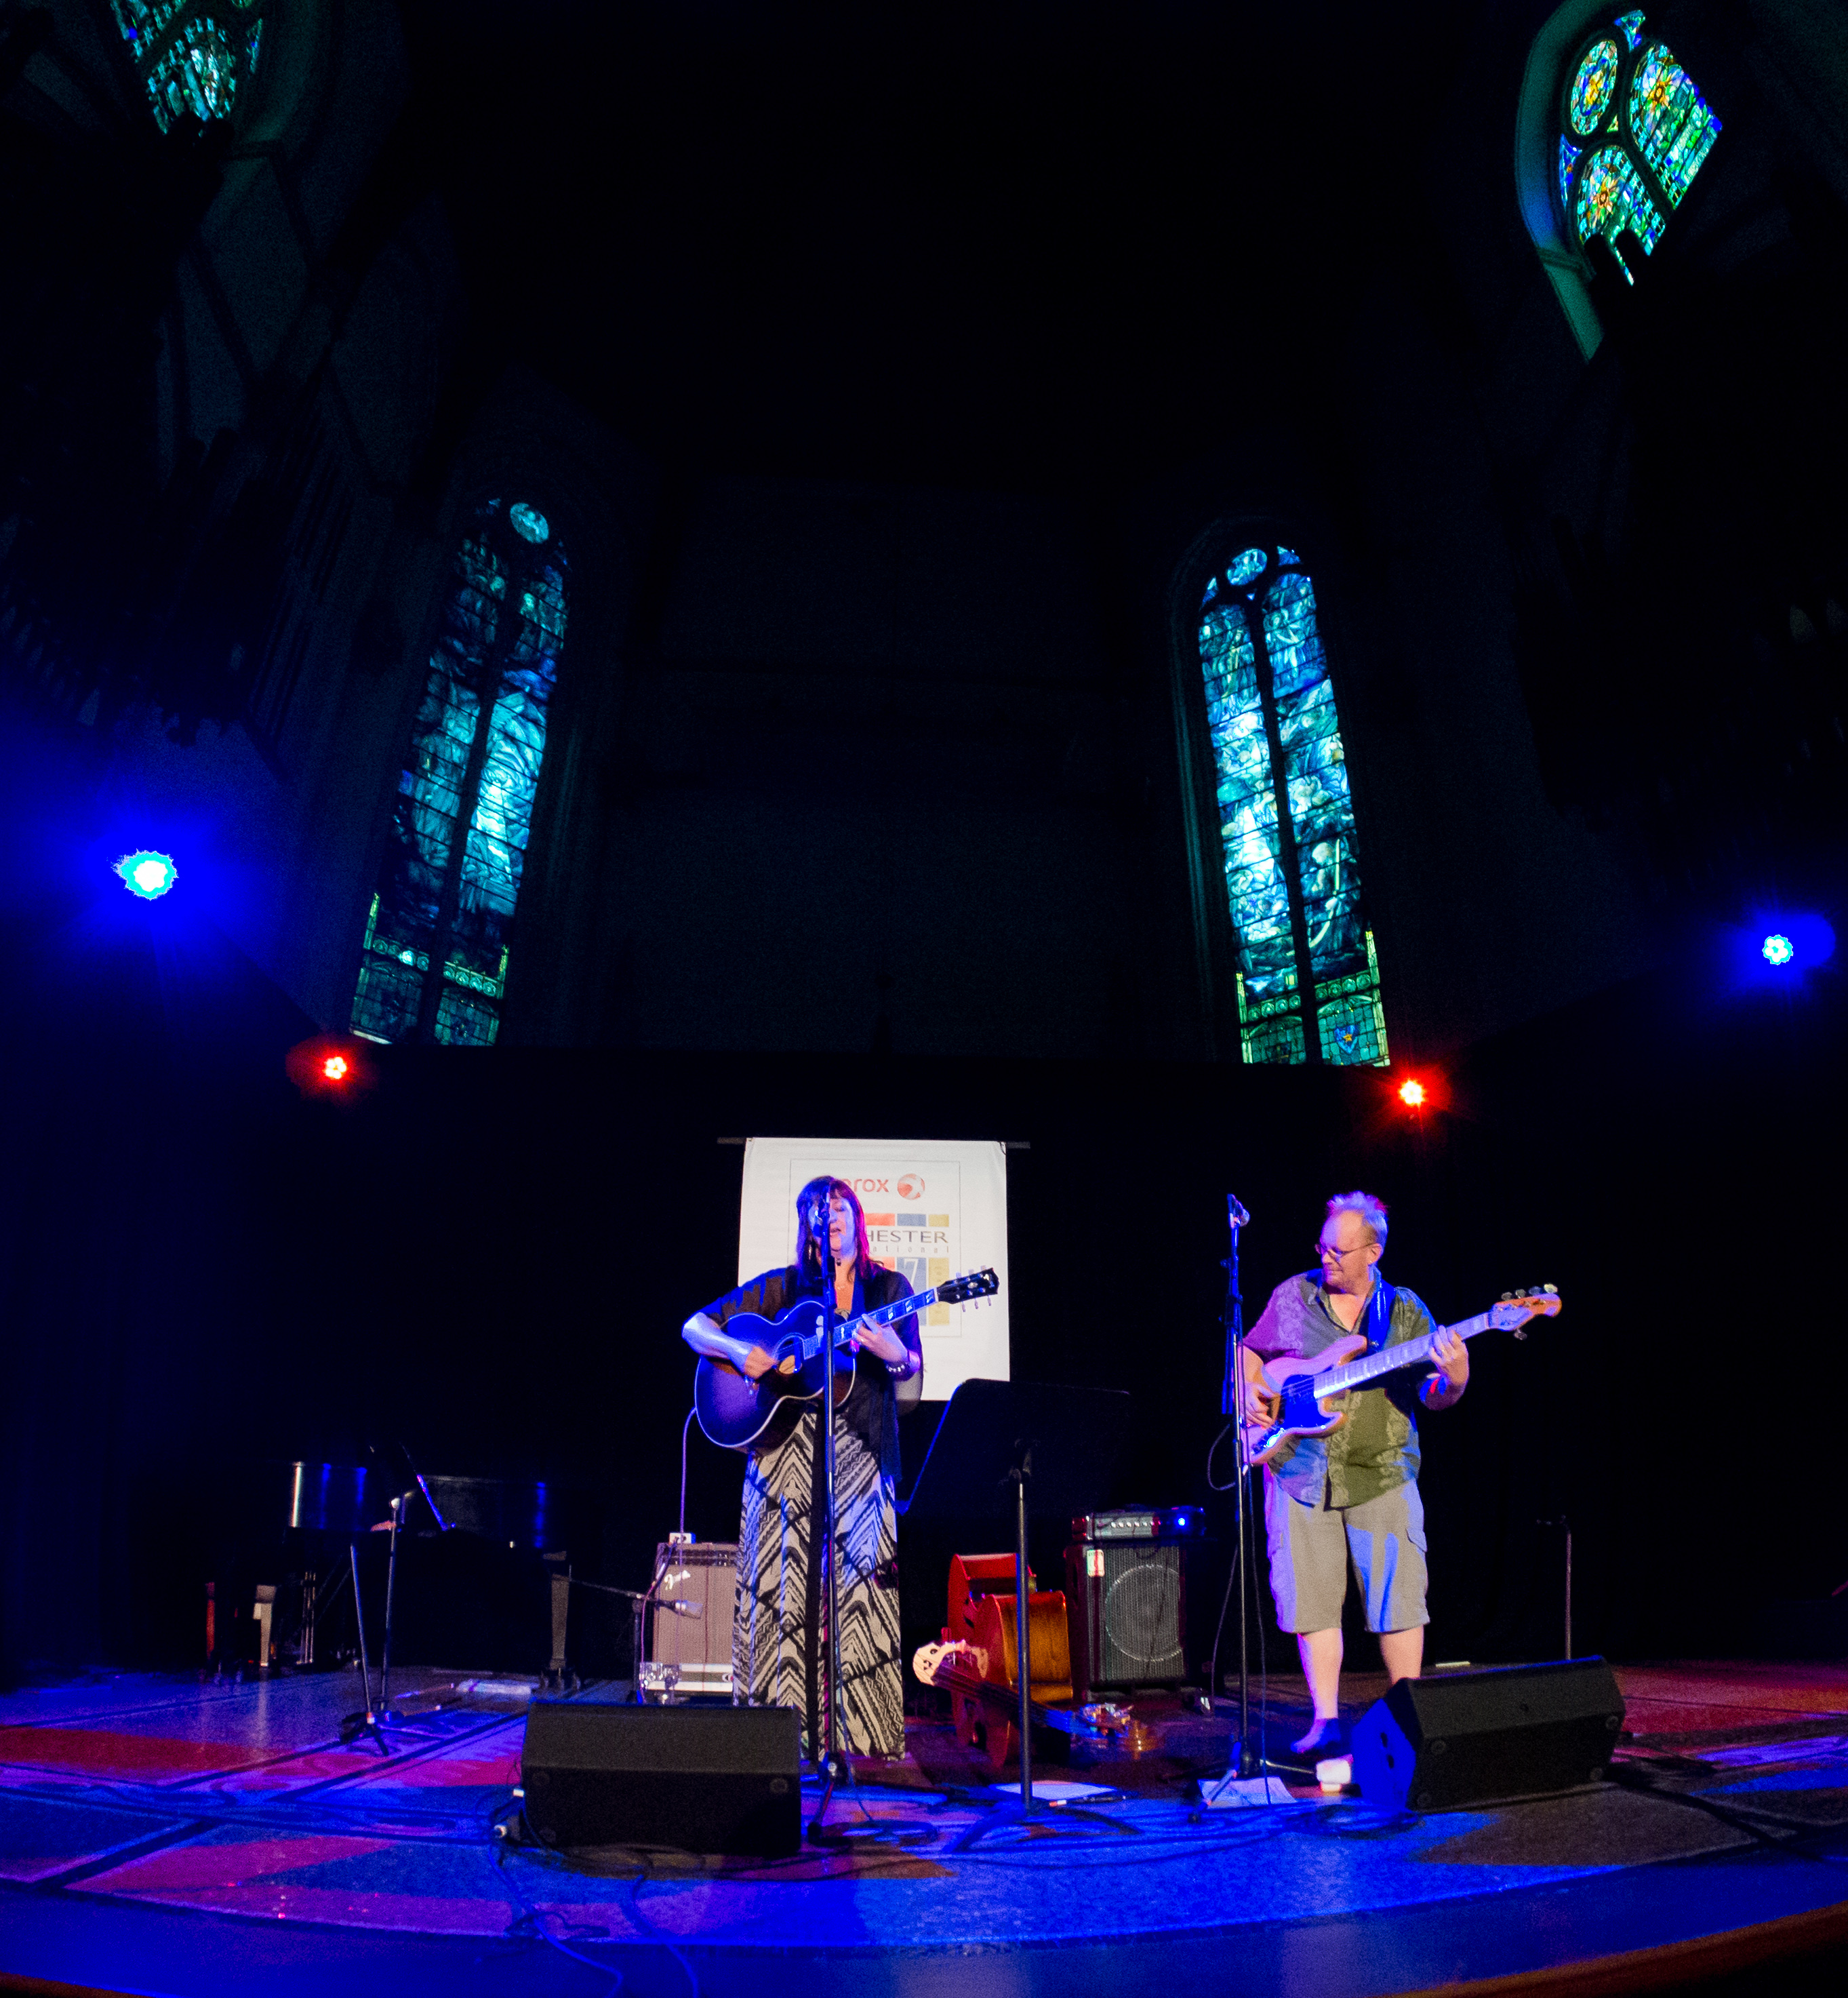 Bancroft & Lyne at Christ Church [Mark Druziak]